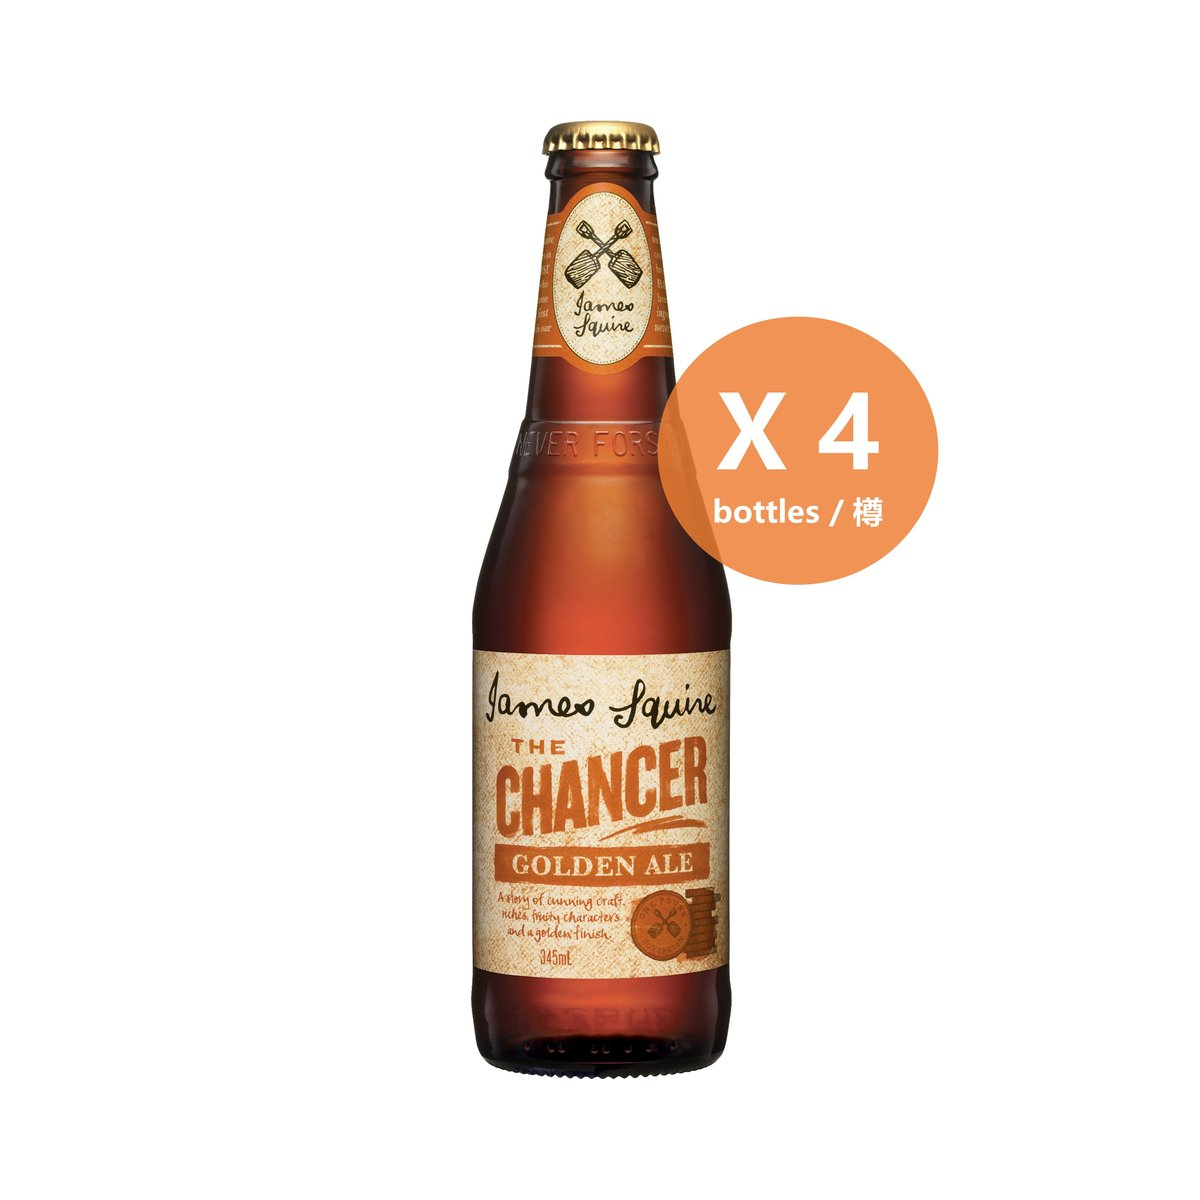 The Chancer Golden Ale - 345ml x 4 Bottles